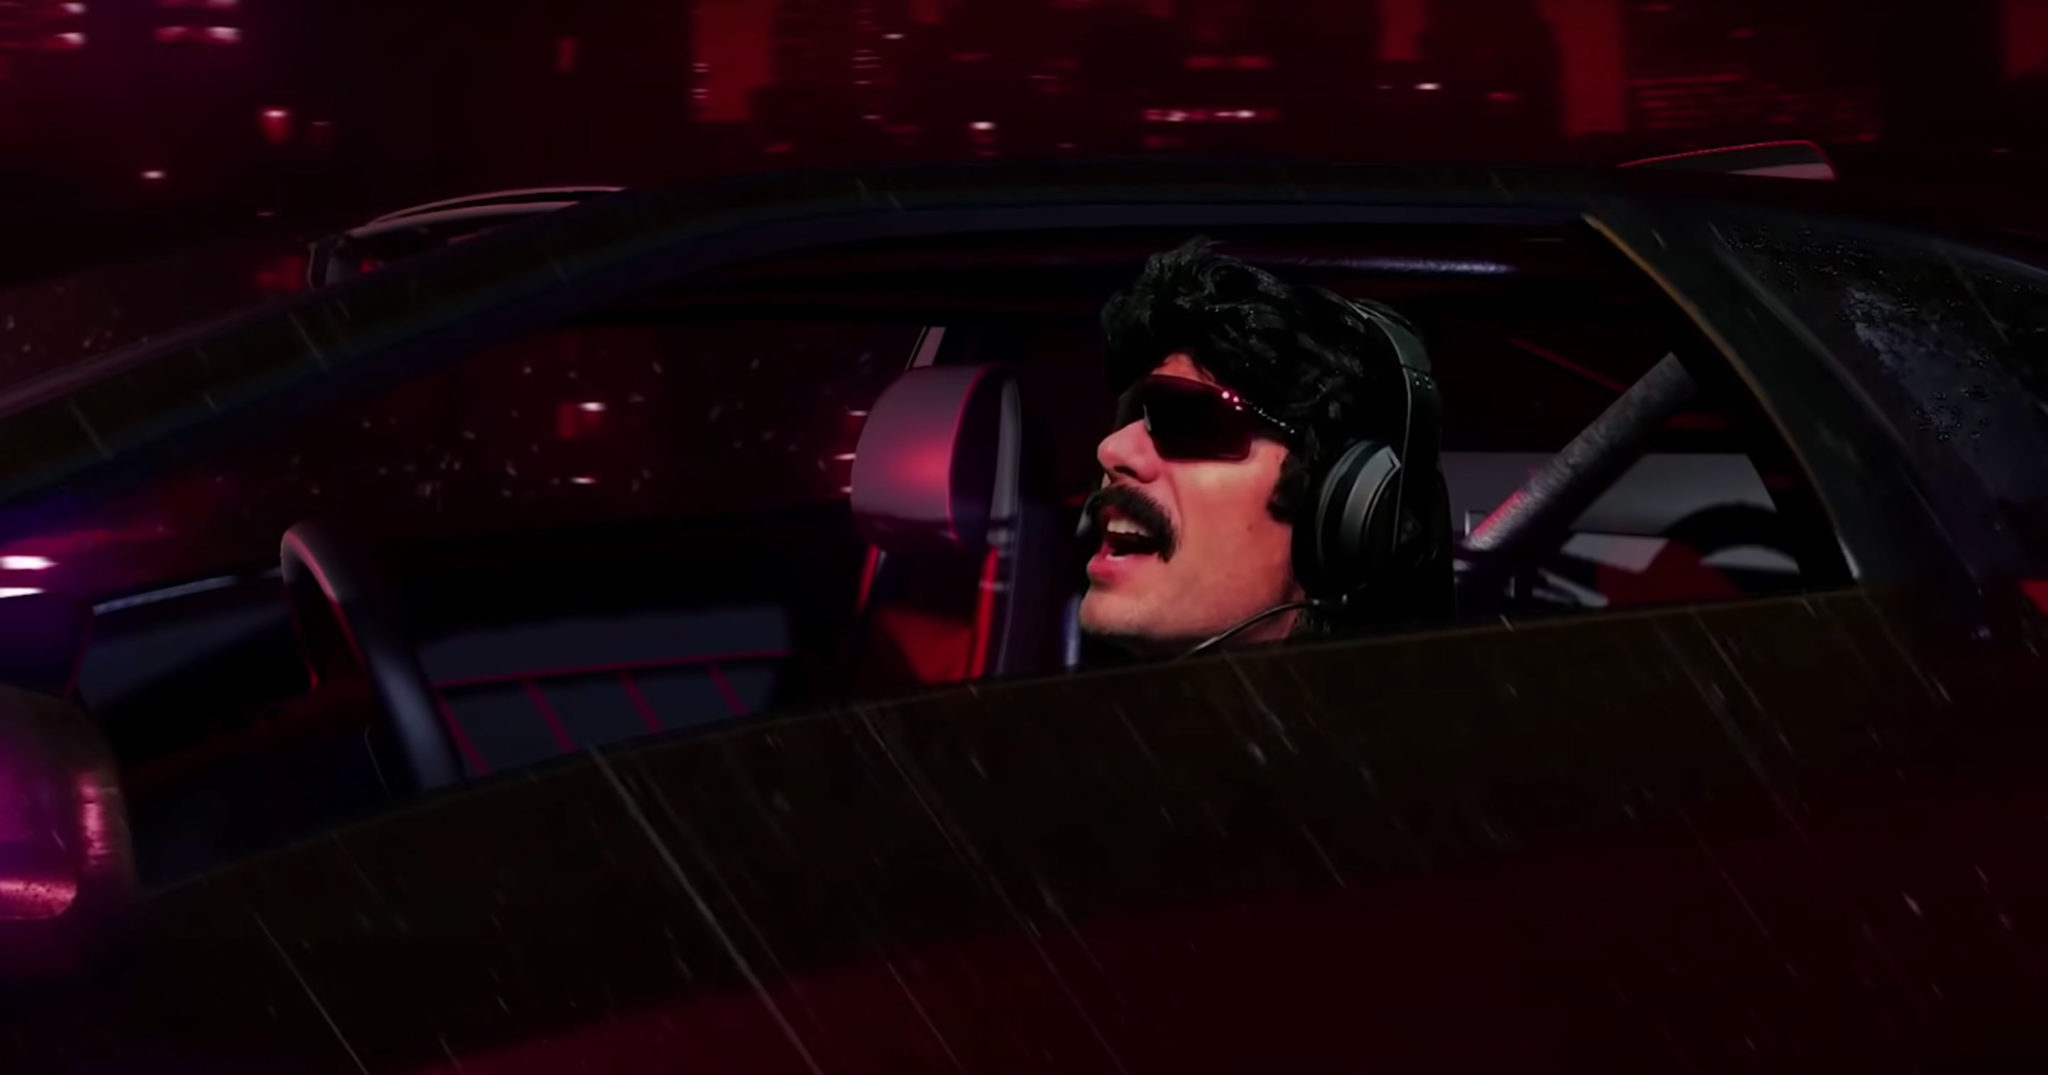 Dr Disrespect on YouTube.